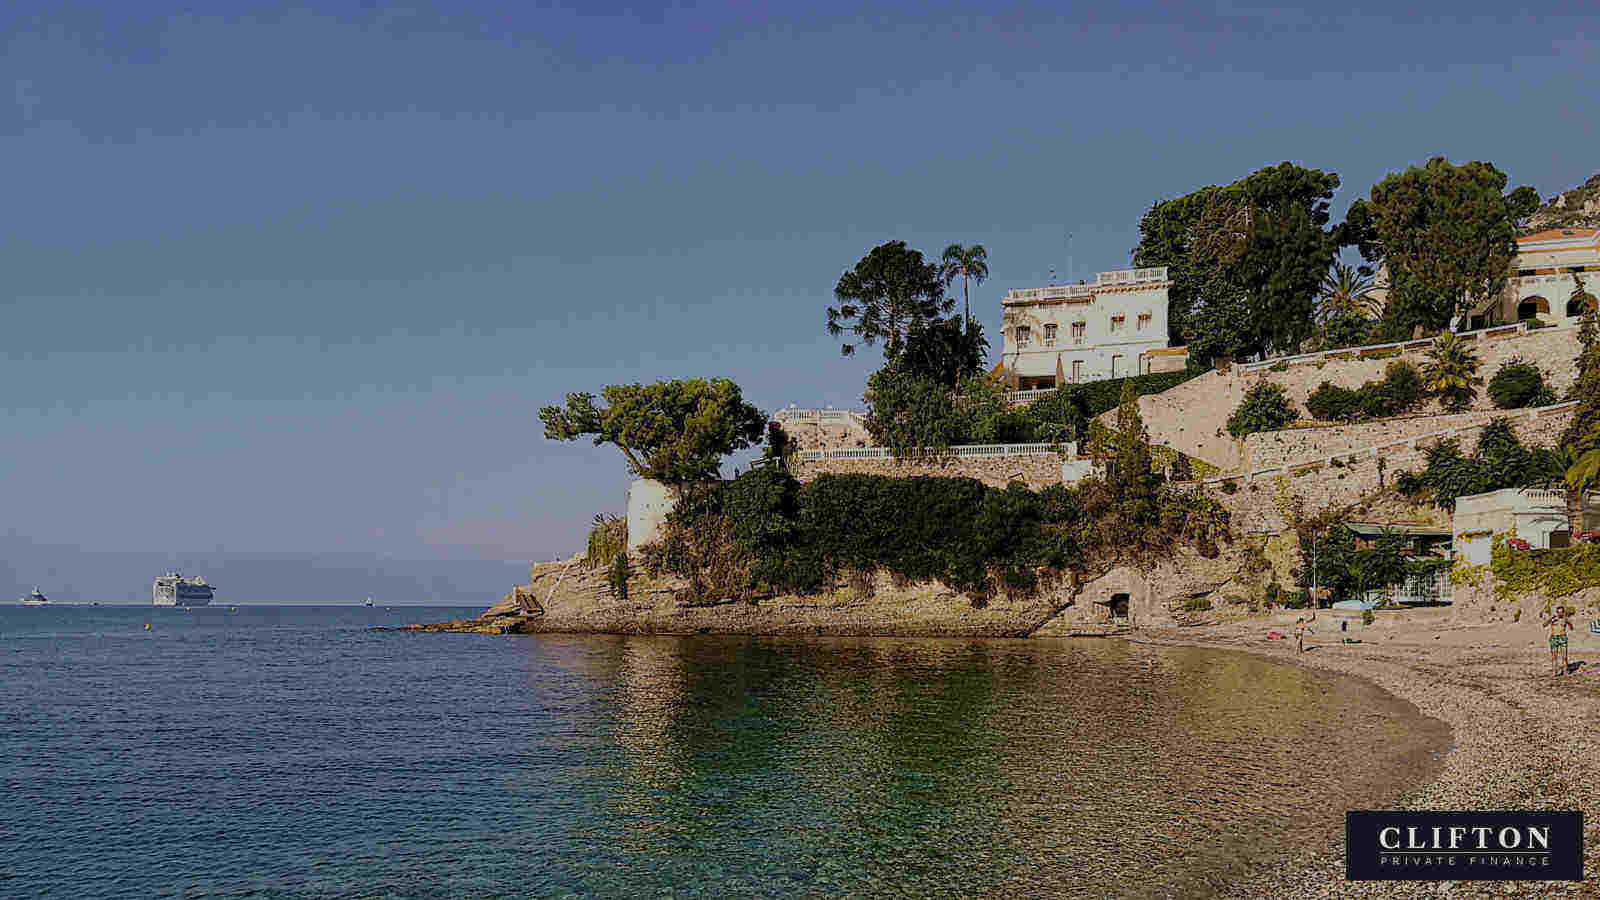 Looking for property finance on the Cote d'Azur? How to access mortgage and short-term development funding